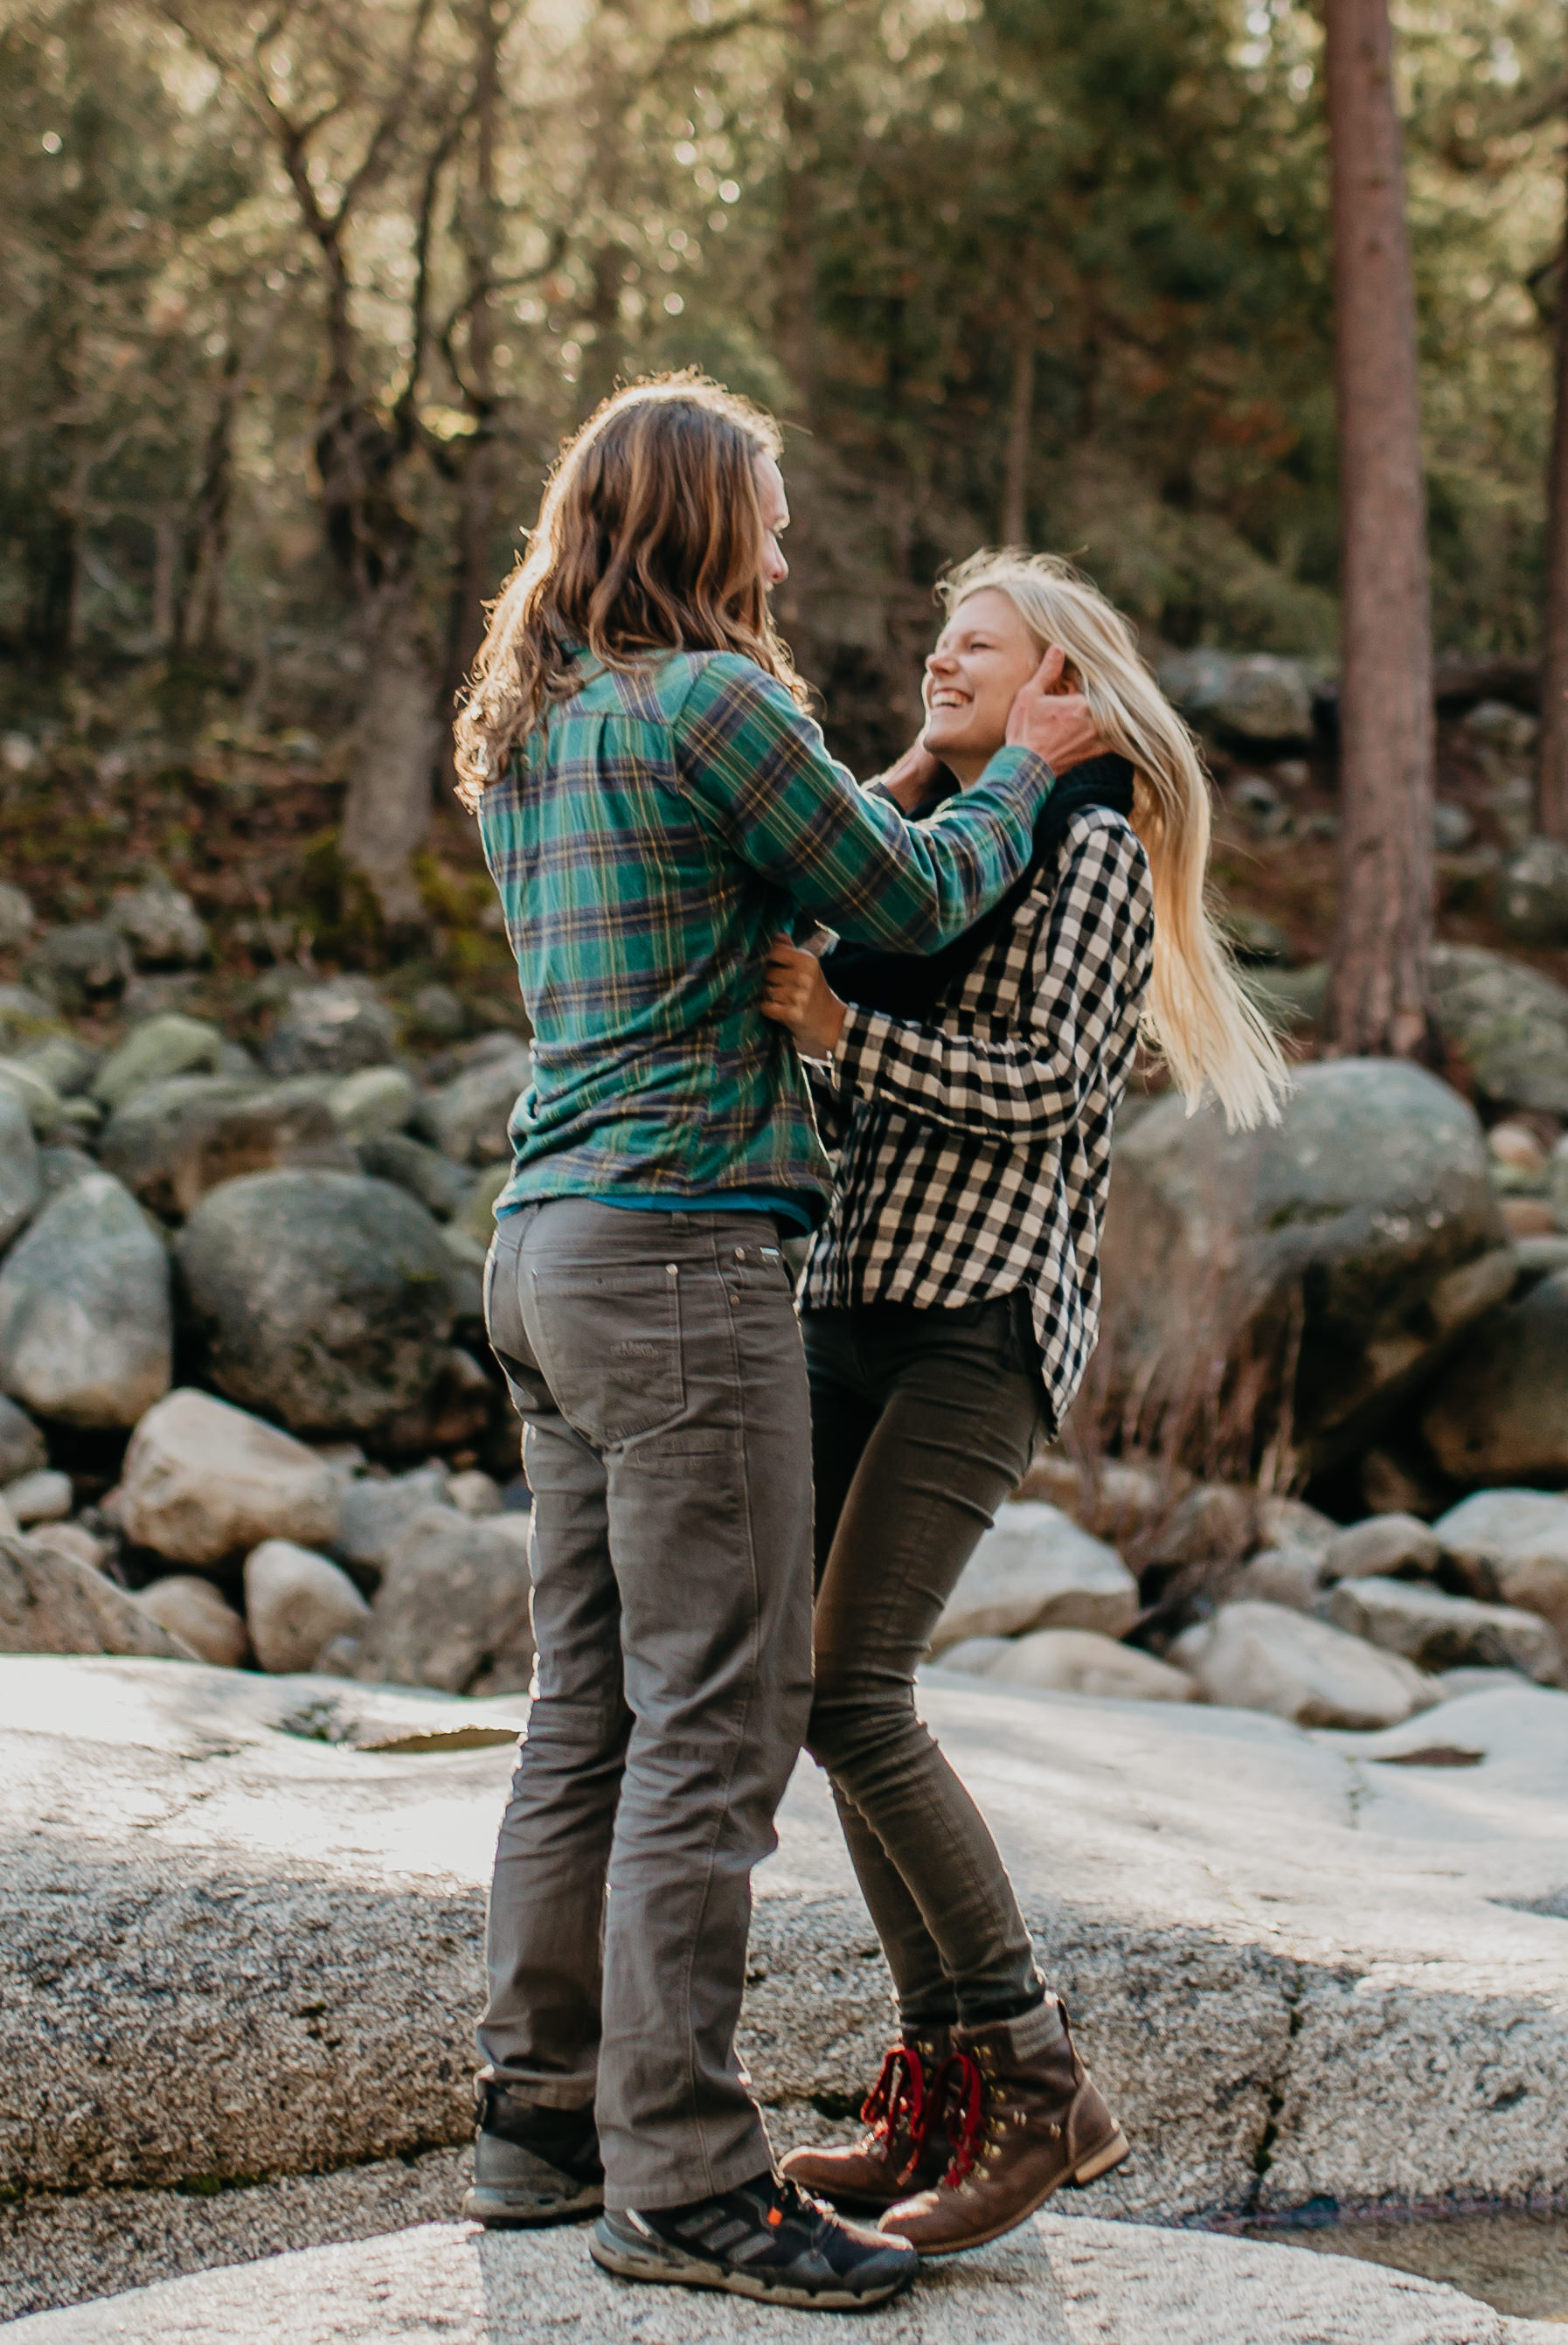 nicole-daacke-photography-yosemite-riverside-adventurous-engagement-photos-in-yosemite-national-park-elopement-photographer-weddings-travel-destination-wedding-eloping-elope-pine-forest-24.jpg